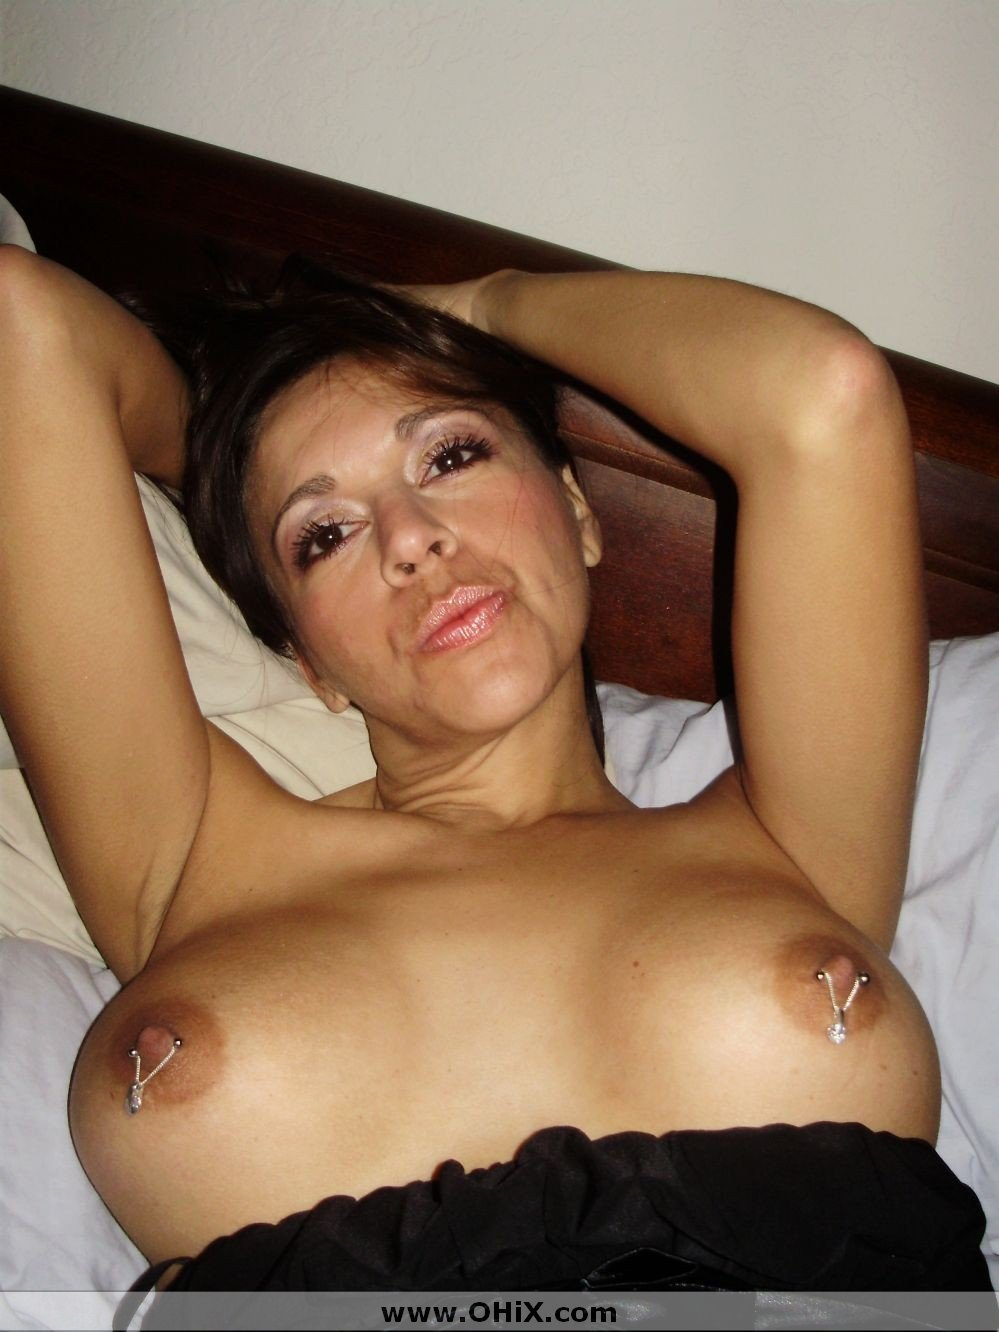 http://static.ohix.com/photos/Mature-brune-bronzee-3/15.jpg